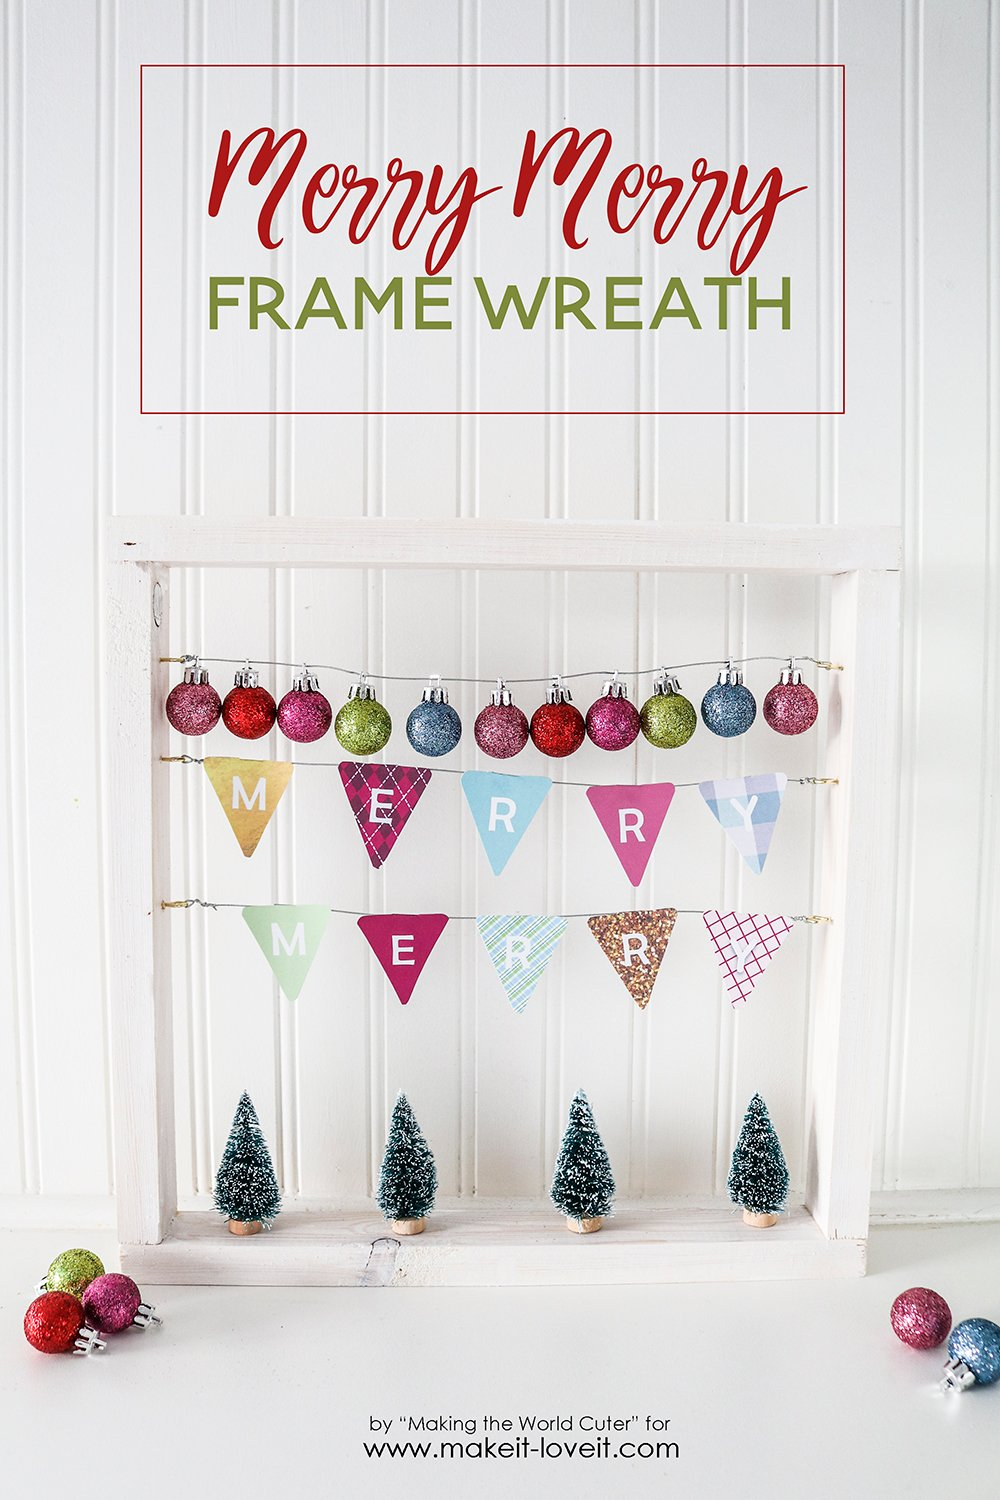 Merry merry frame wreath 17 copy